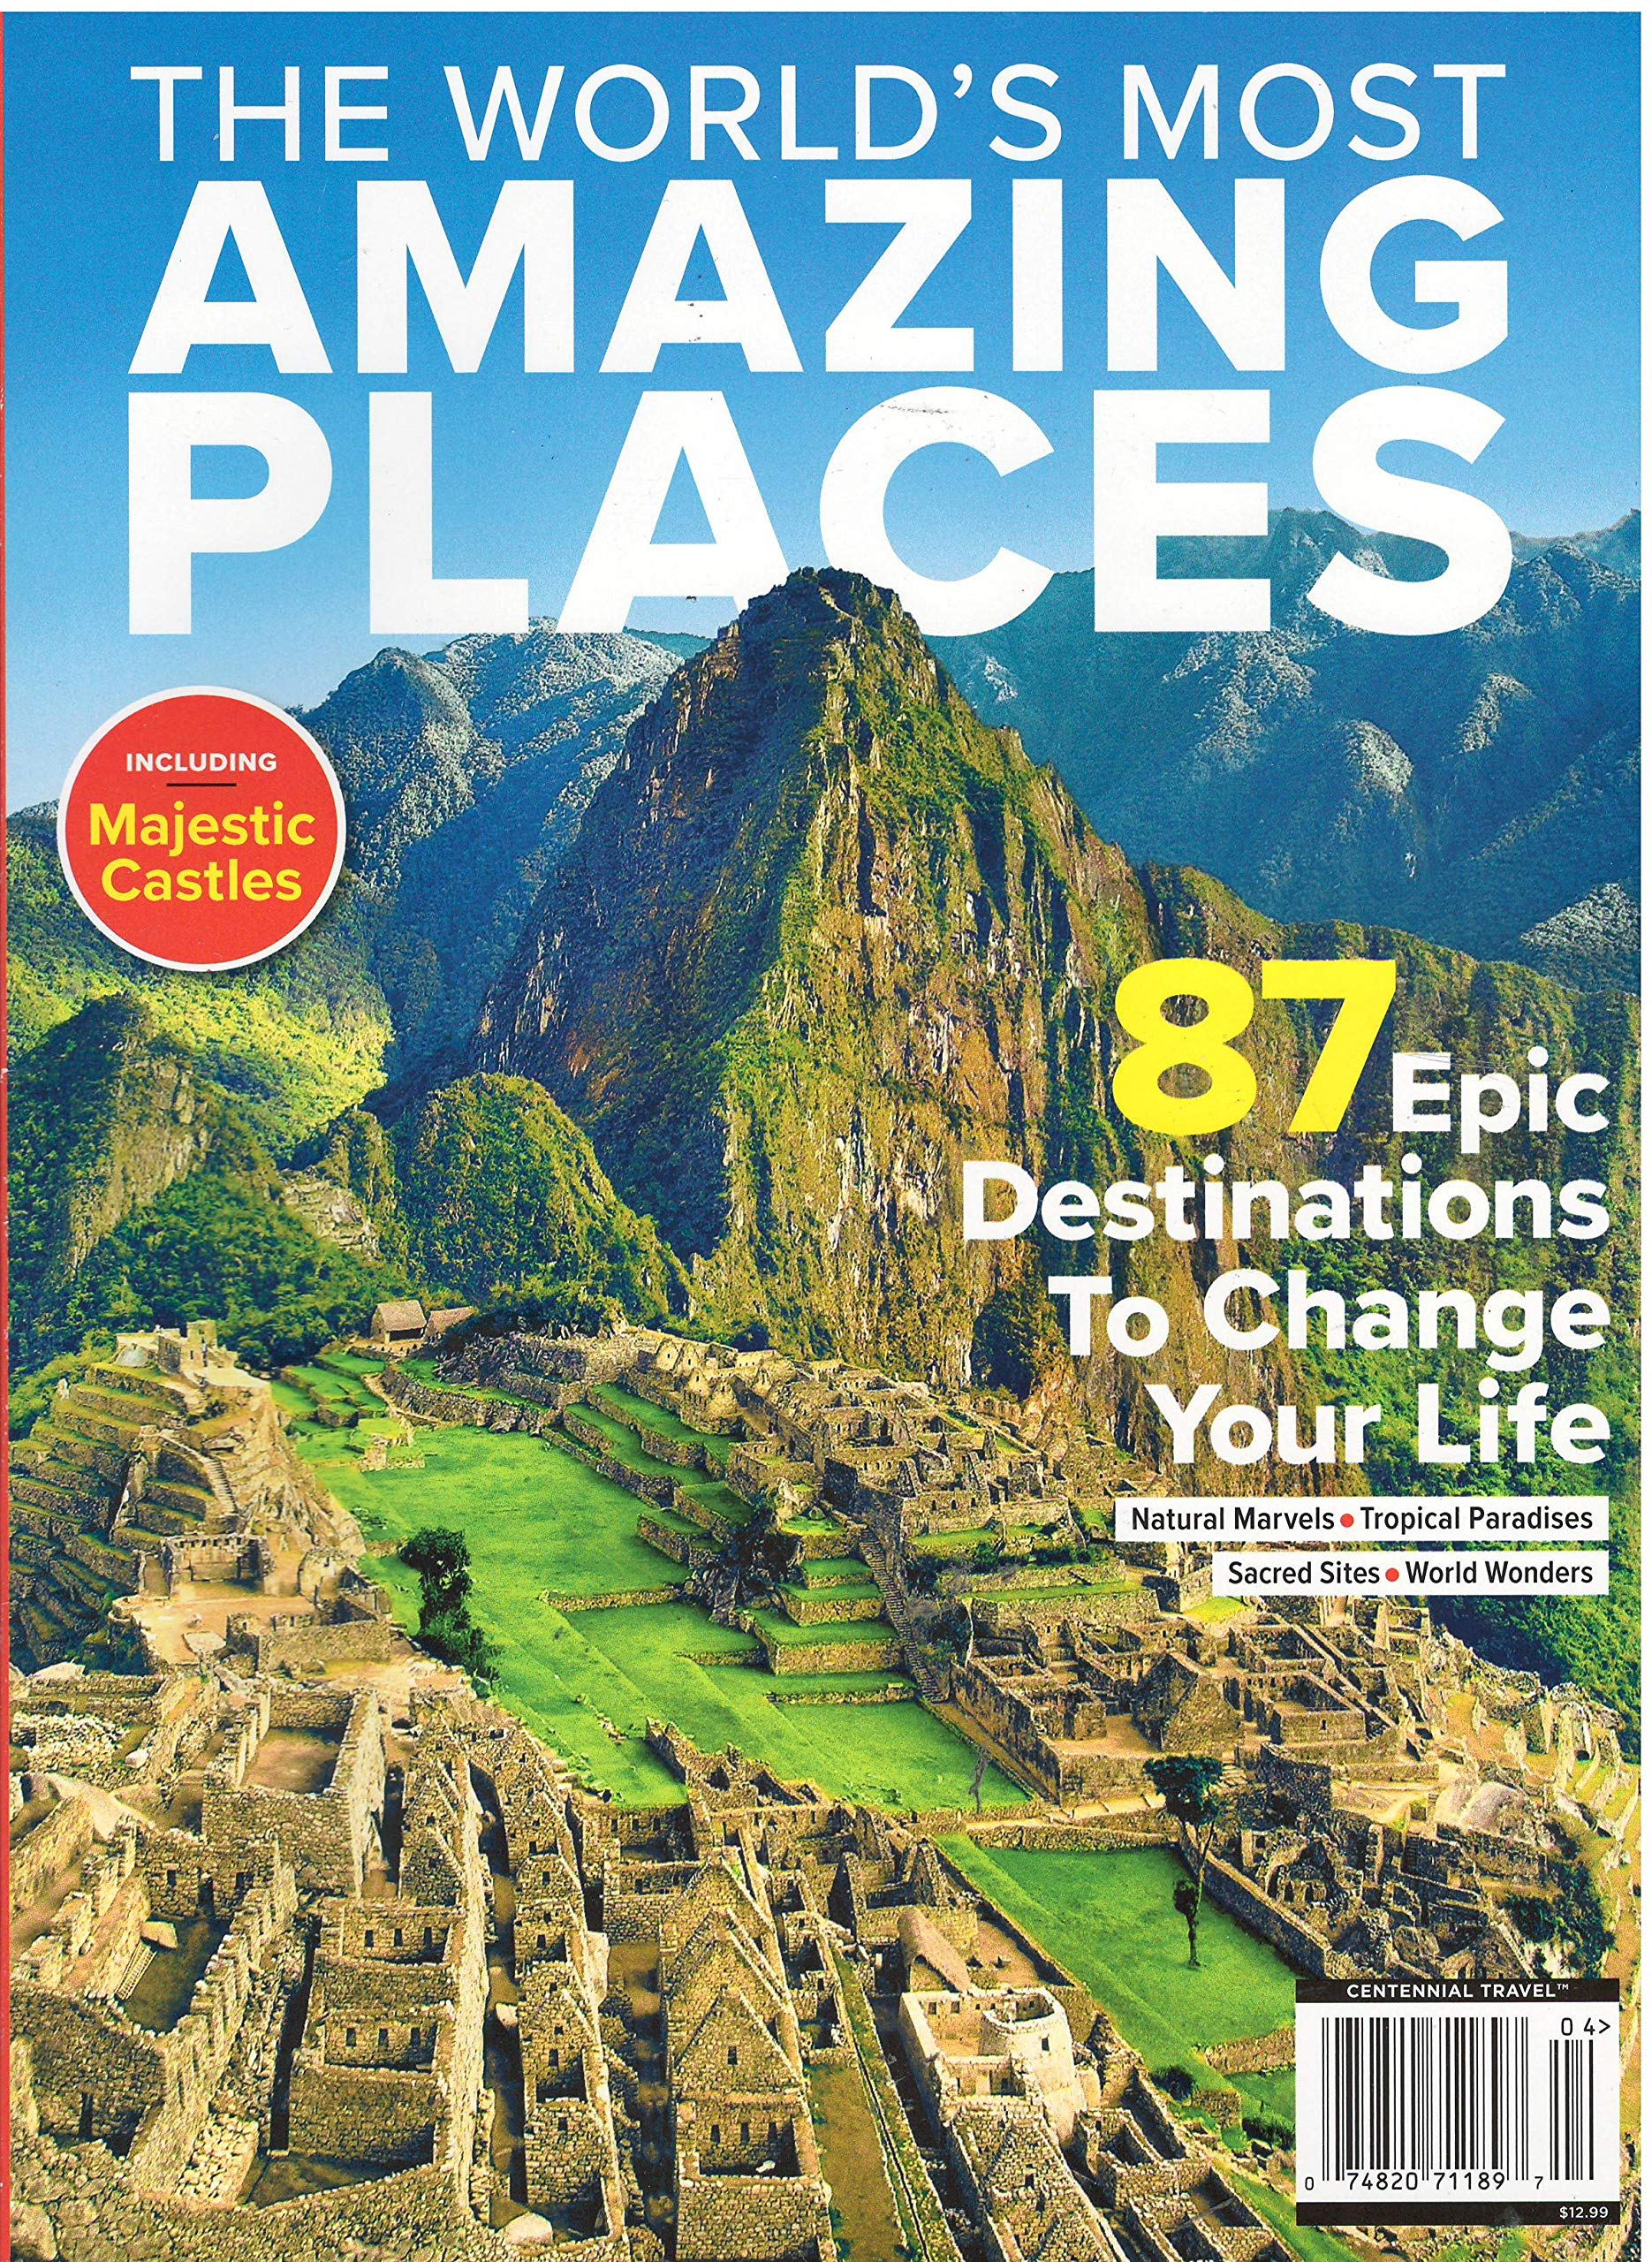 The World's Most Amazing Places Magazine Centennial Travel